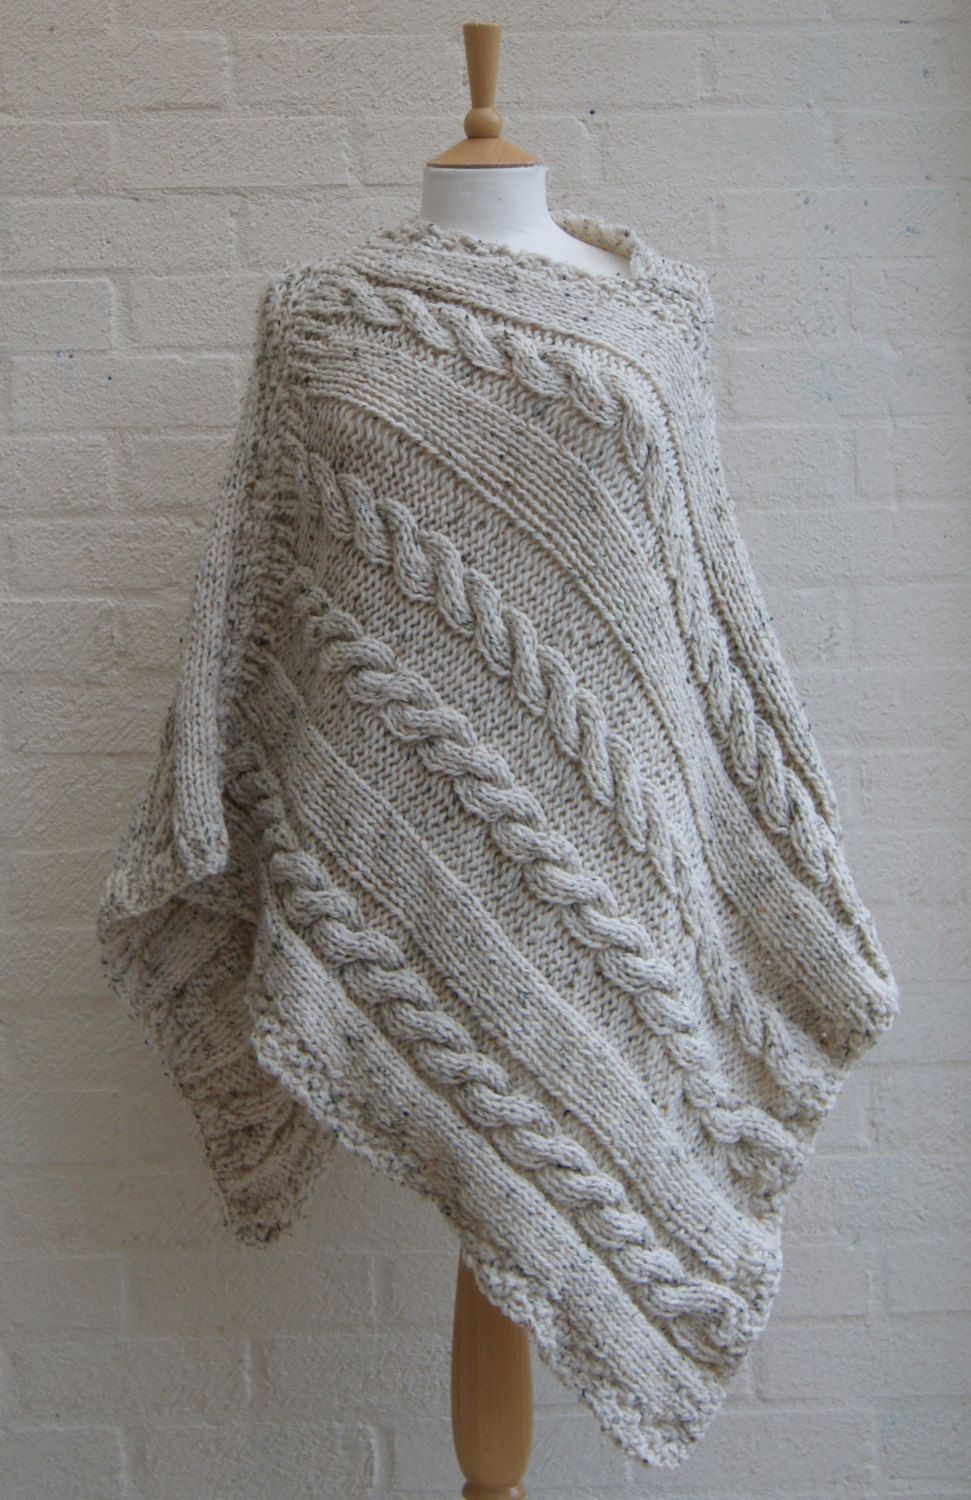 Knitting Patterns For Ponchos And Shawls : Chunky knit oatmeal poncho women knitted